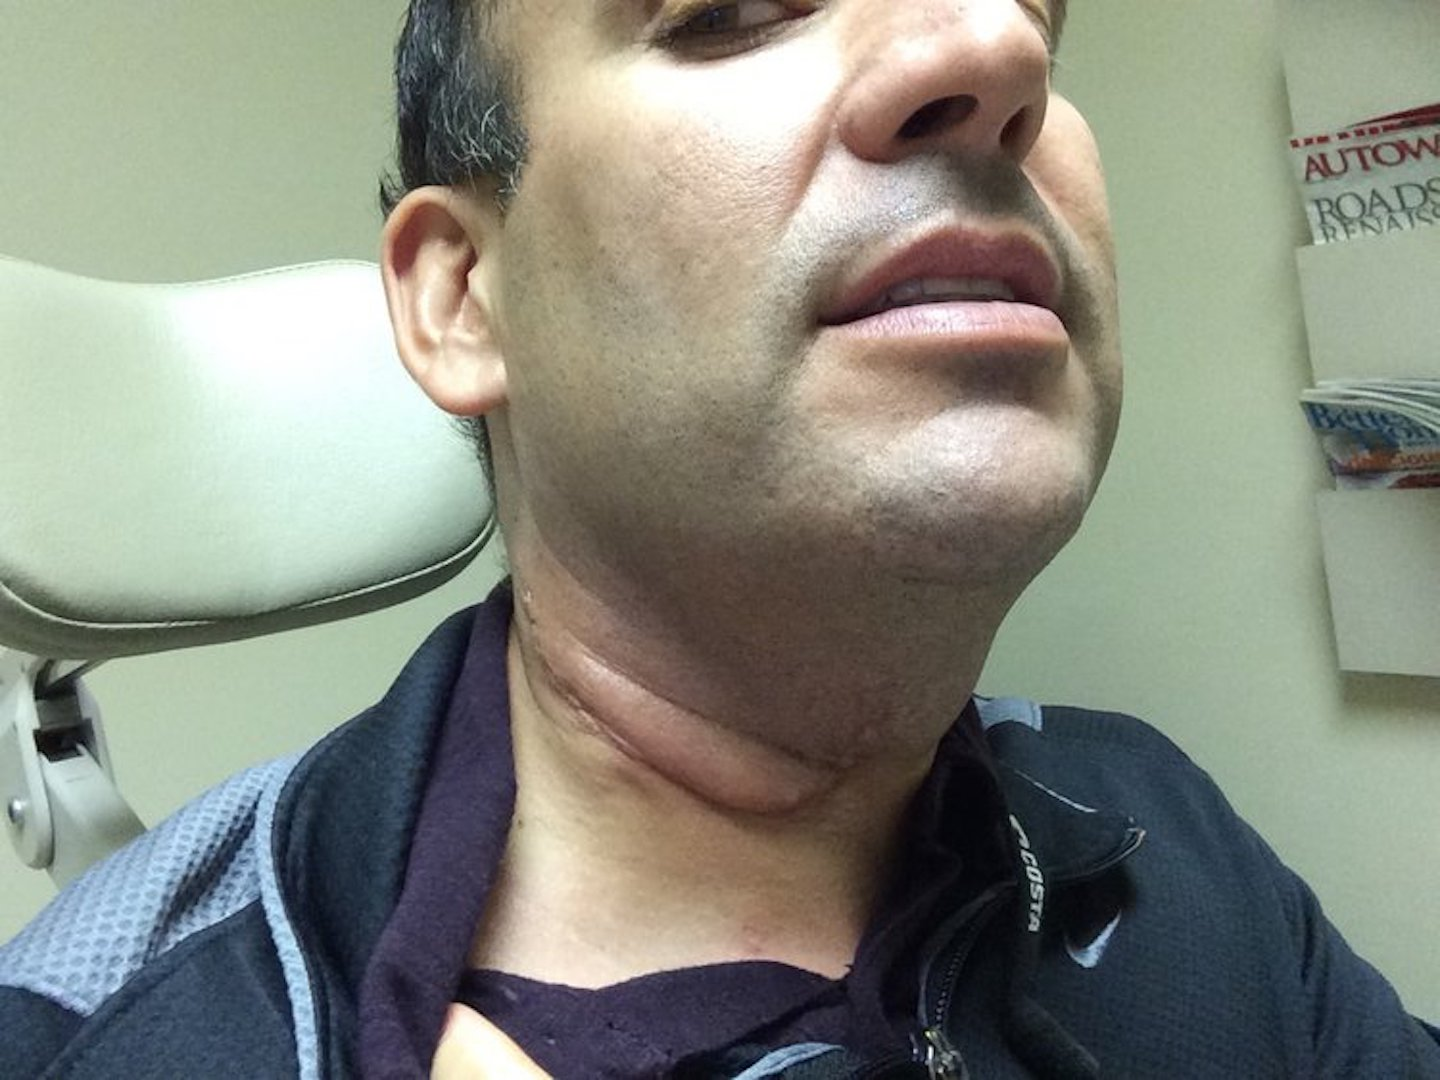 is hpv throat cancer rare